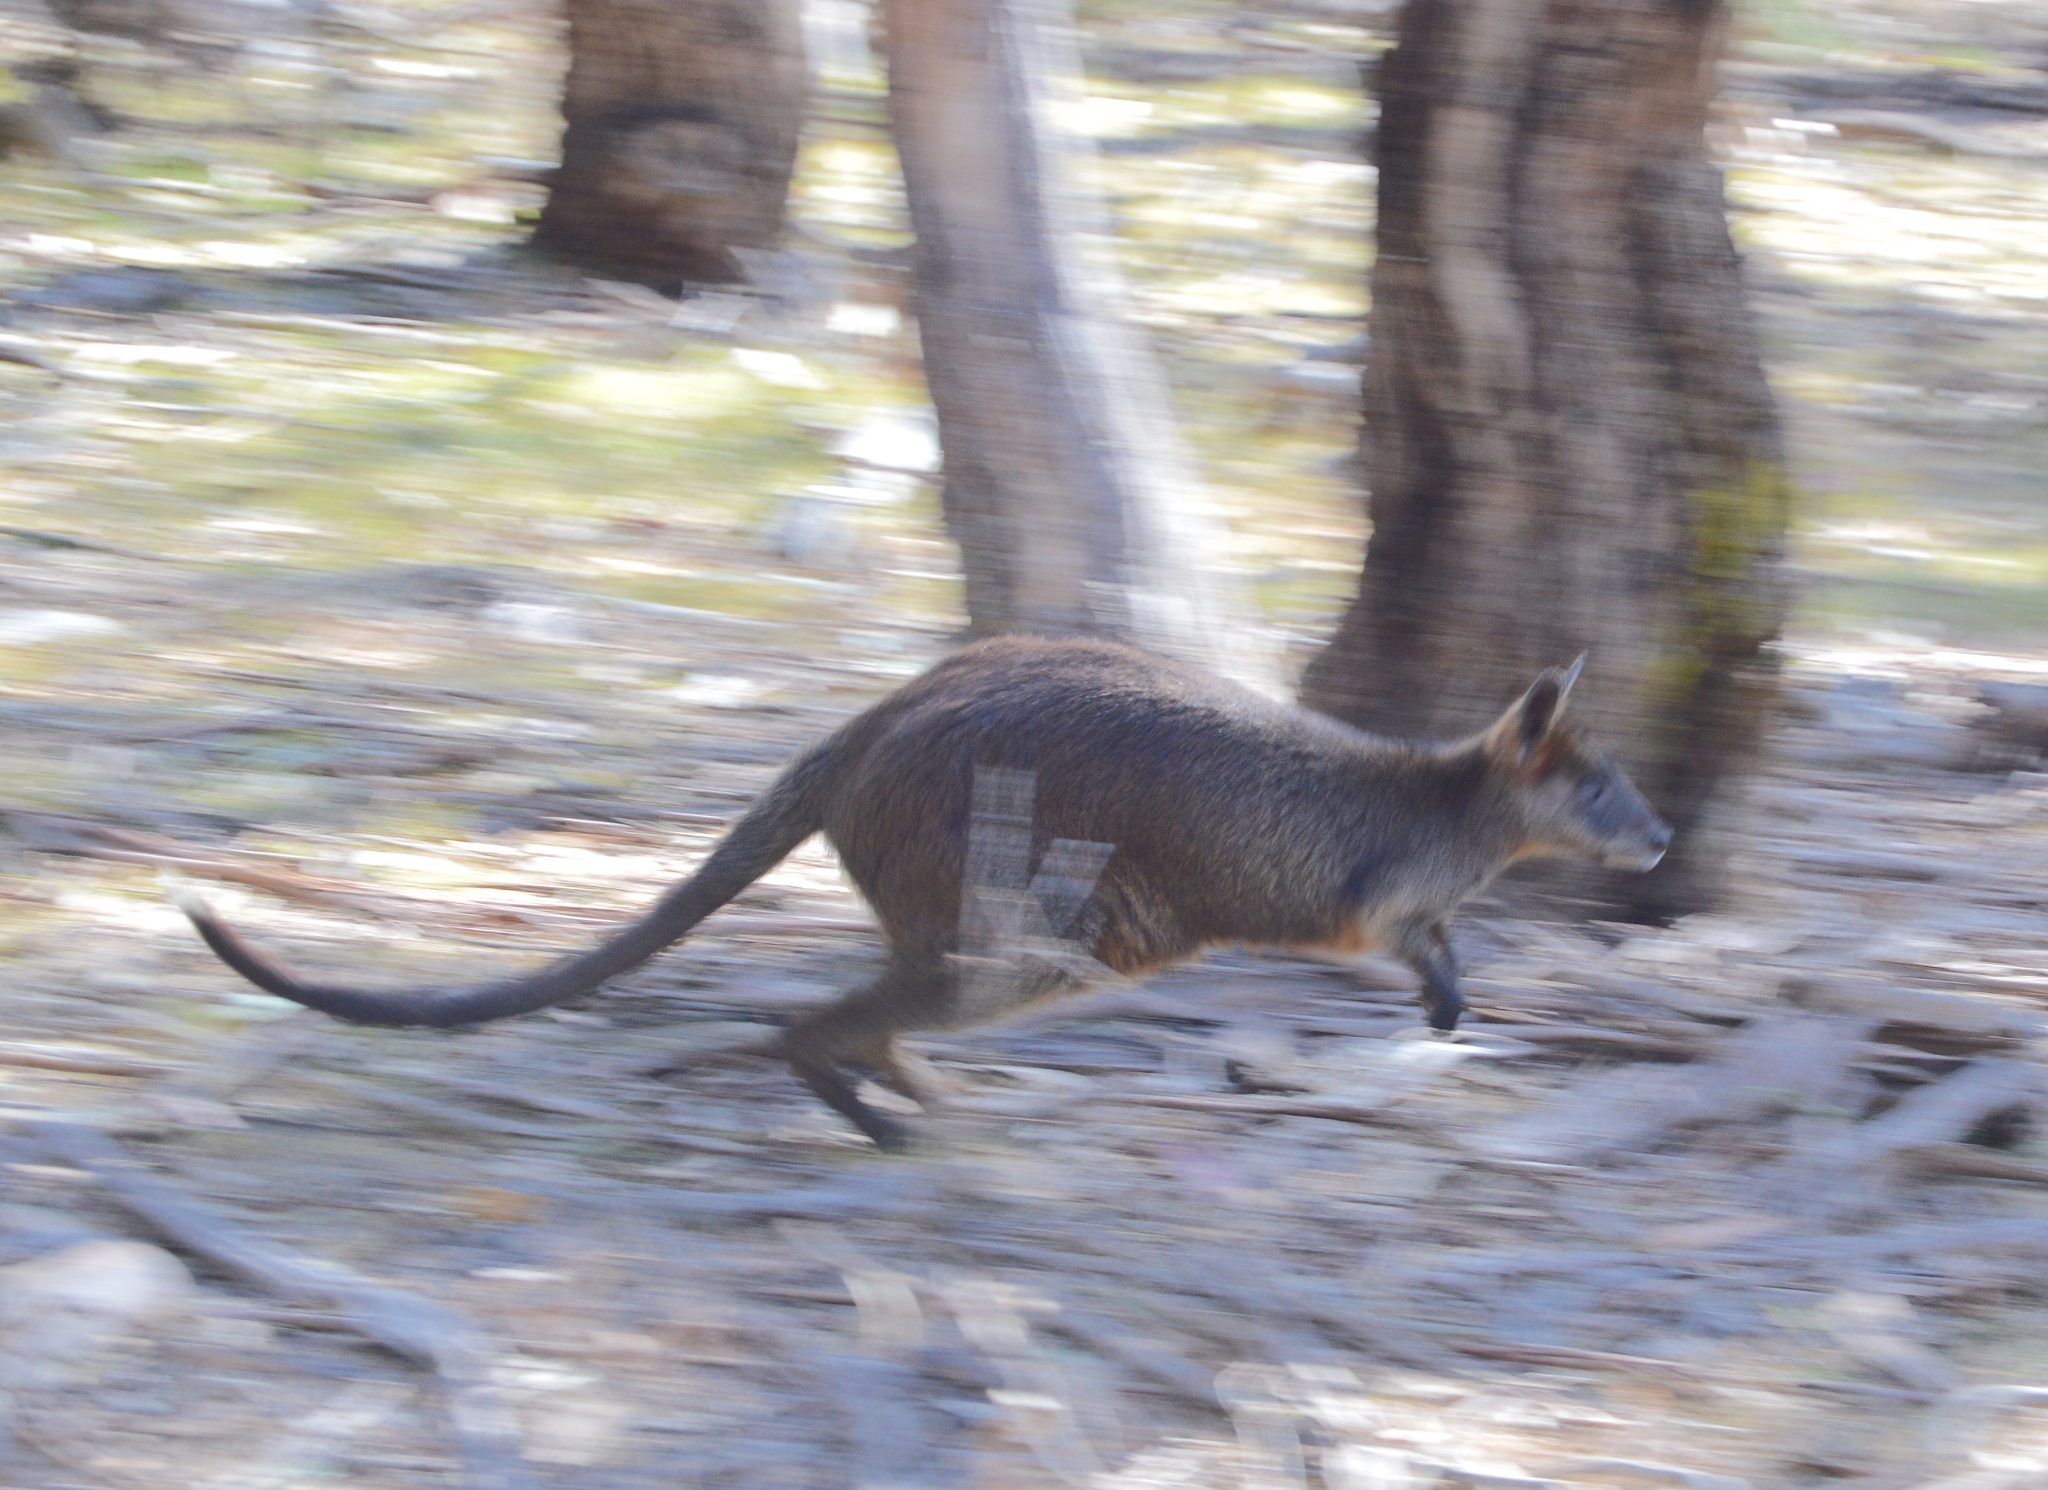 134.7. A wallaby with her joey in her pouch jumps through the eucalyptus trees on Phillip Island, Australia